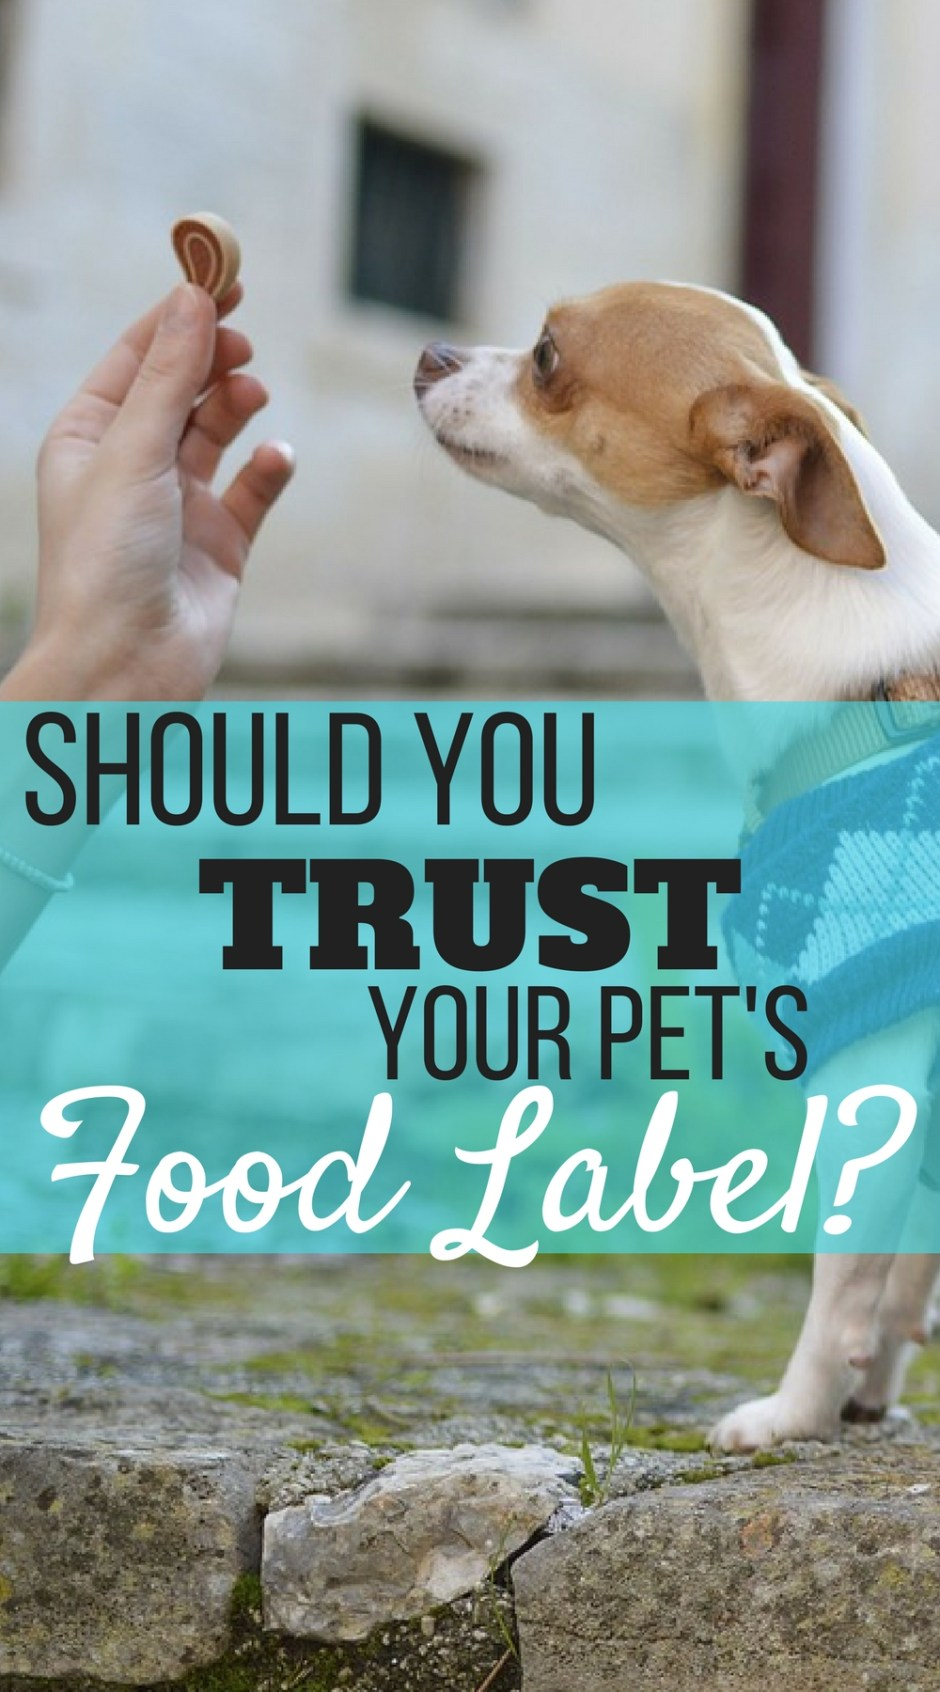 With dog food and treat recalls on the rise, should you trust your pet's food label? What to look out for to keep your pets healthy and happy.